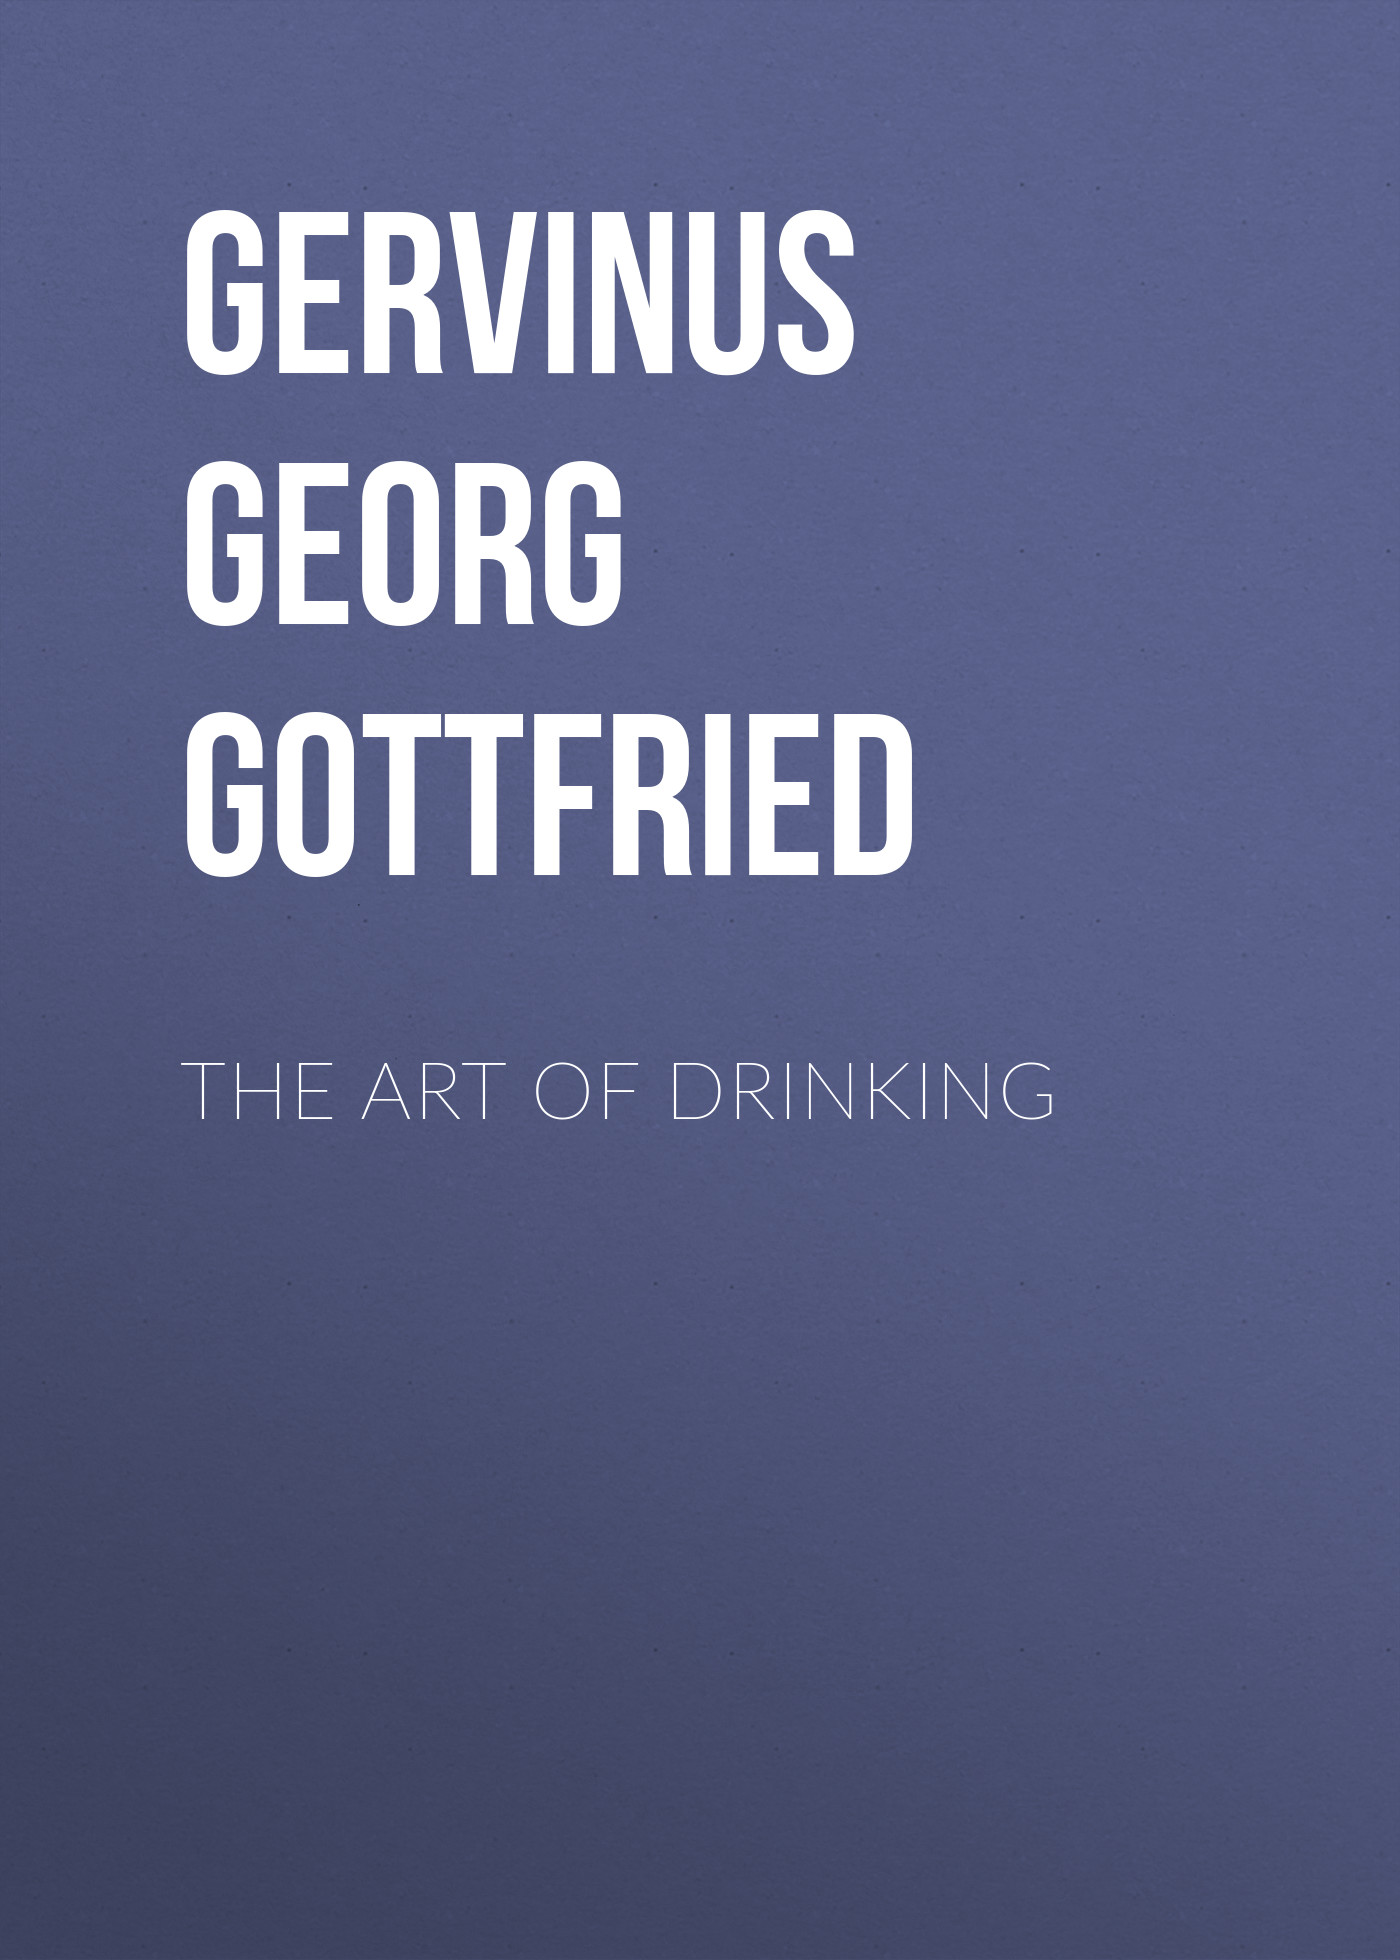 лучшая цена Gervinus Georg Gottfried The Art of Drinking